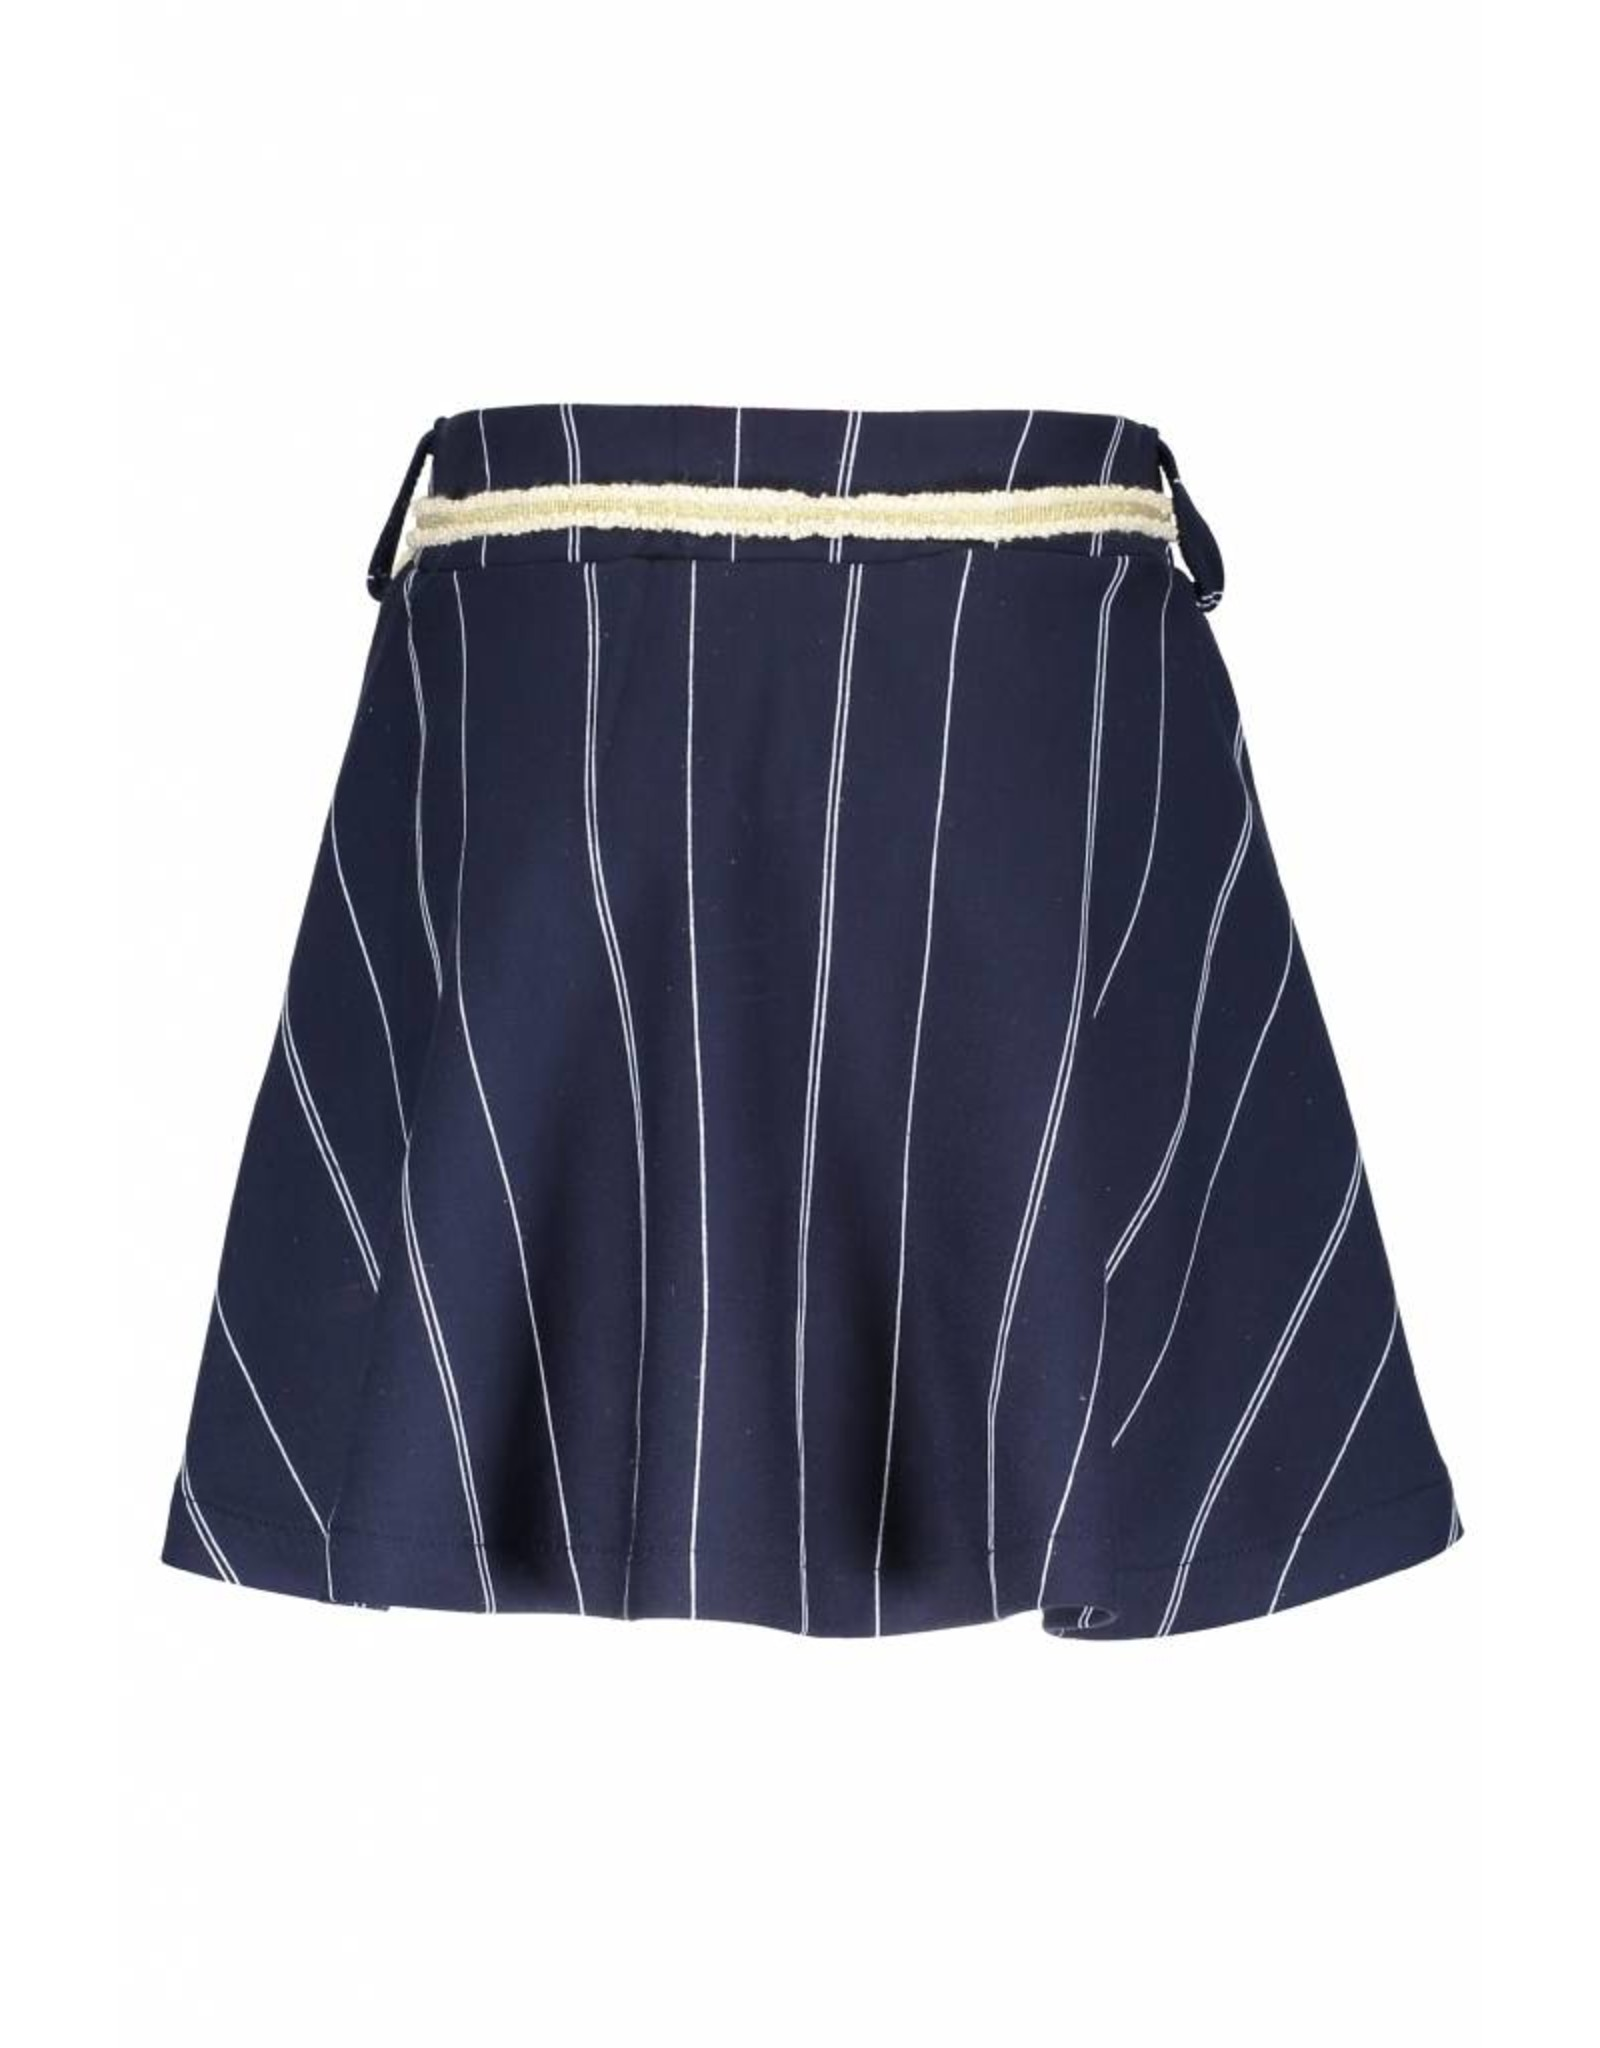 NONO NONO NenaB Pinstriped Flared Skirt mt 146/152